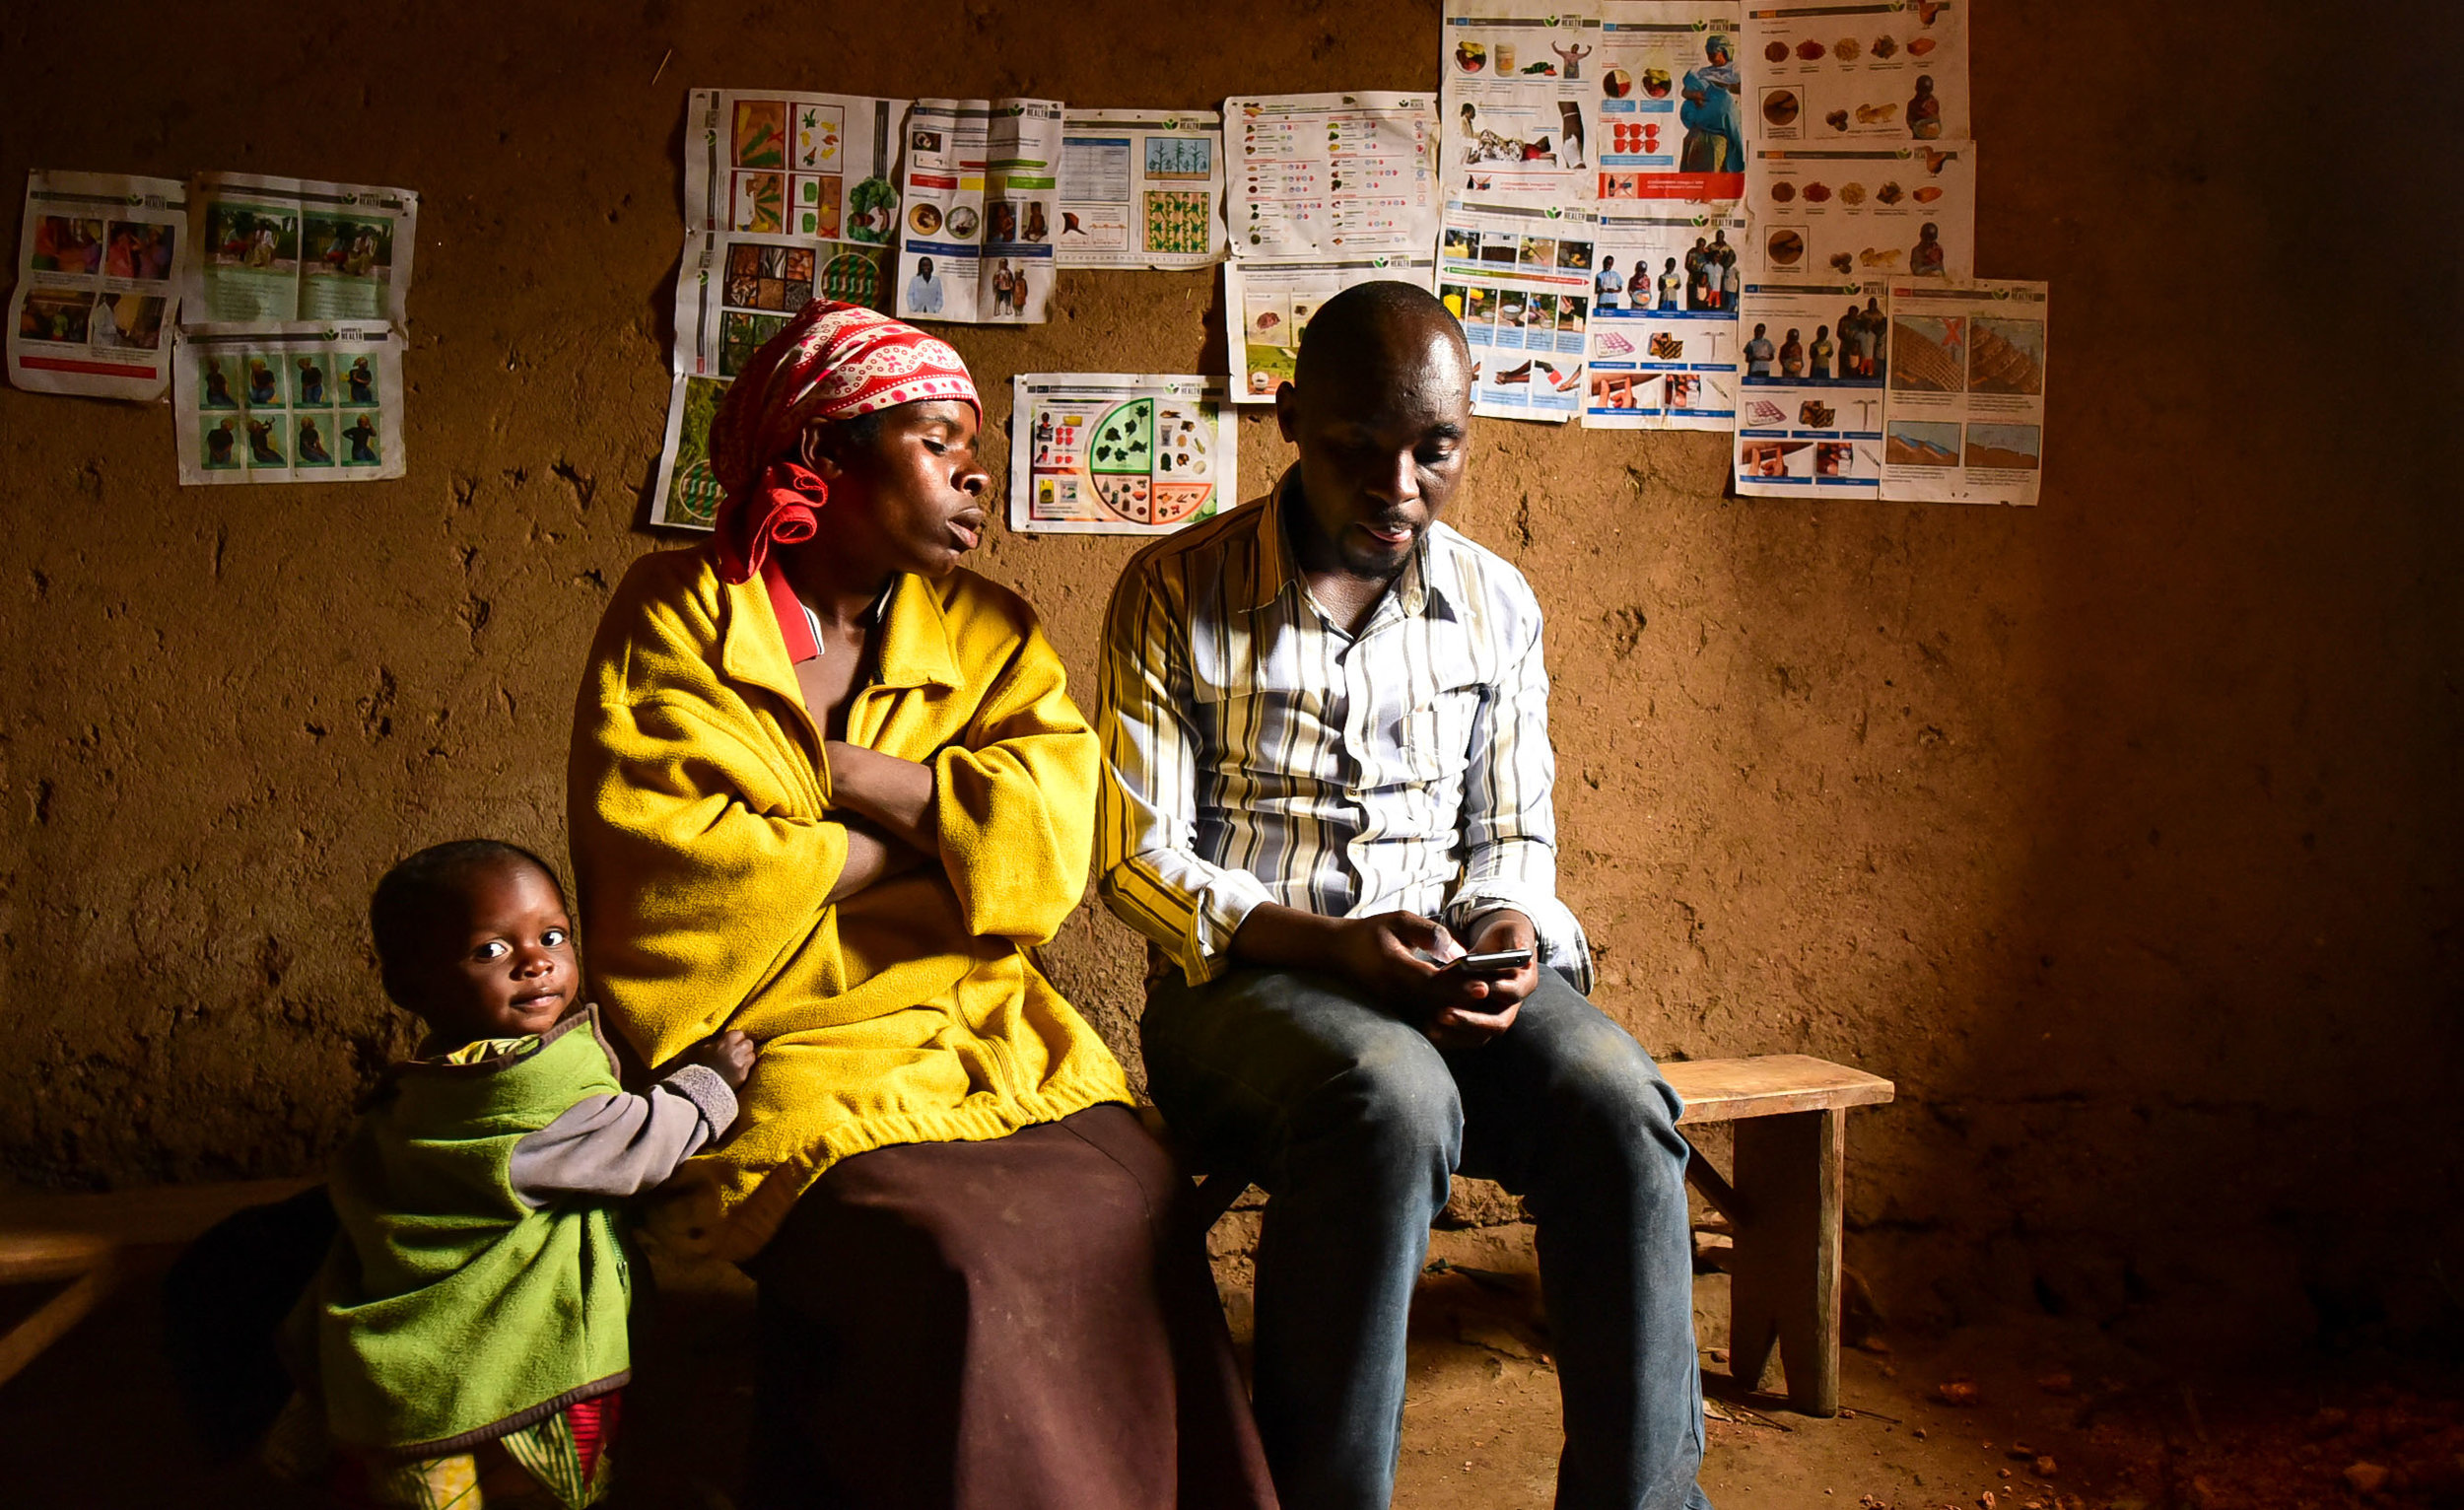 Nyiraribora Ornella is visited by a GHI Monitoring and Evaluation agent in her home. Ornella graduated from Busogo Health Center one year ago.